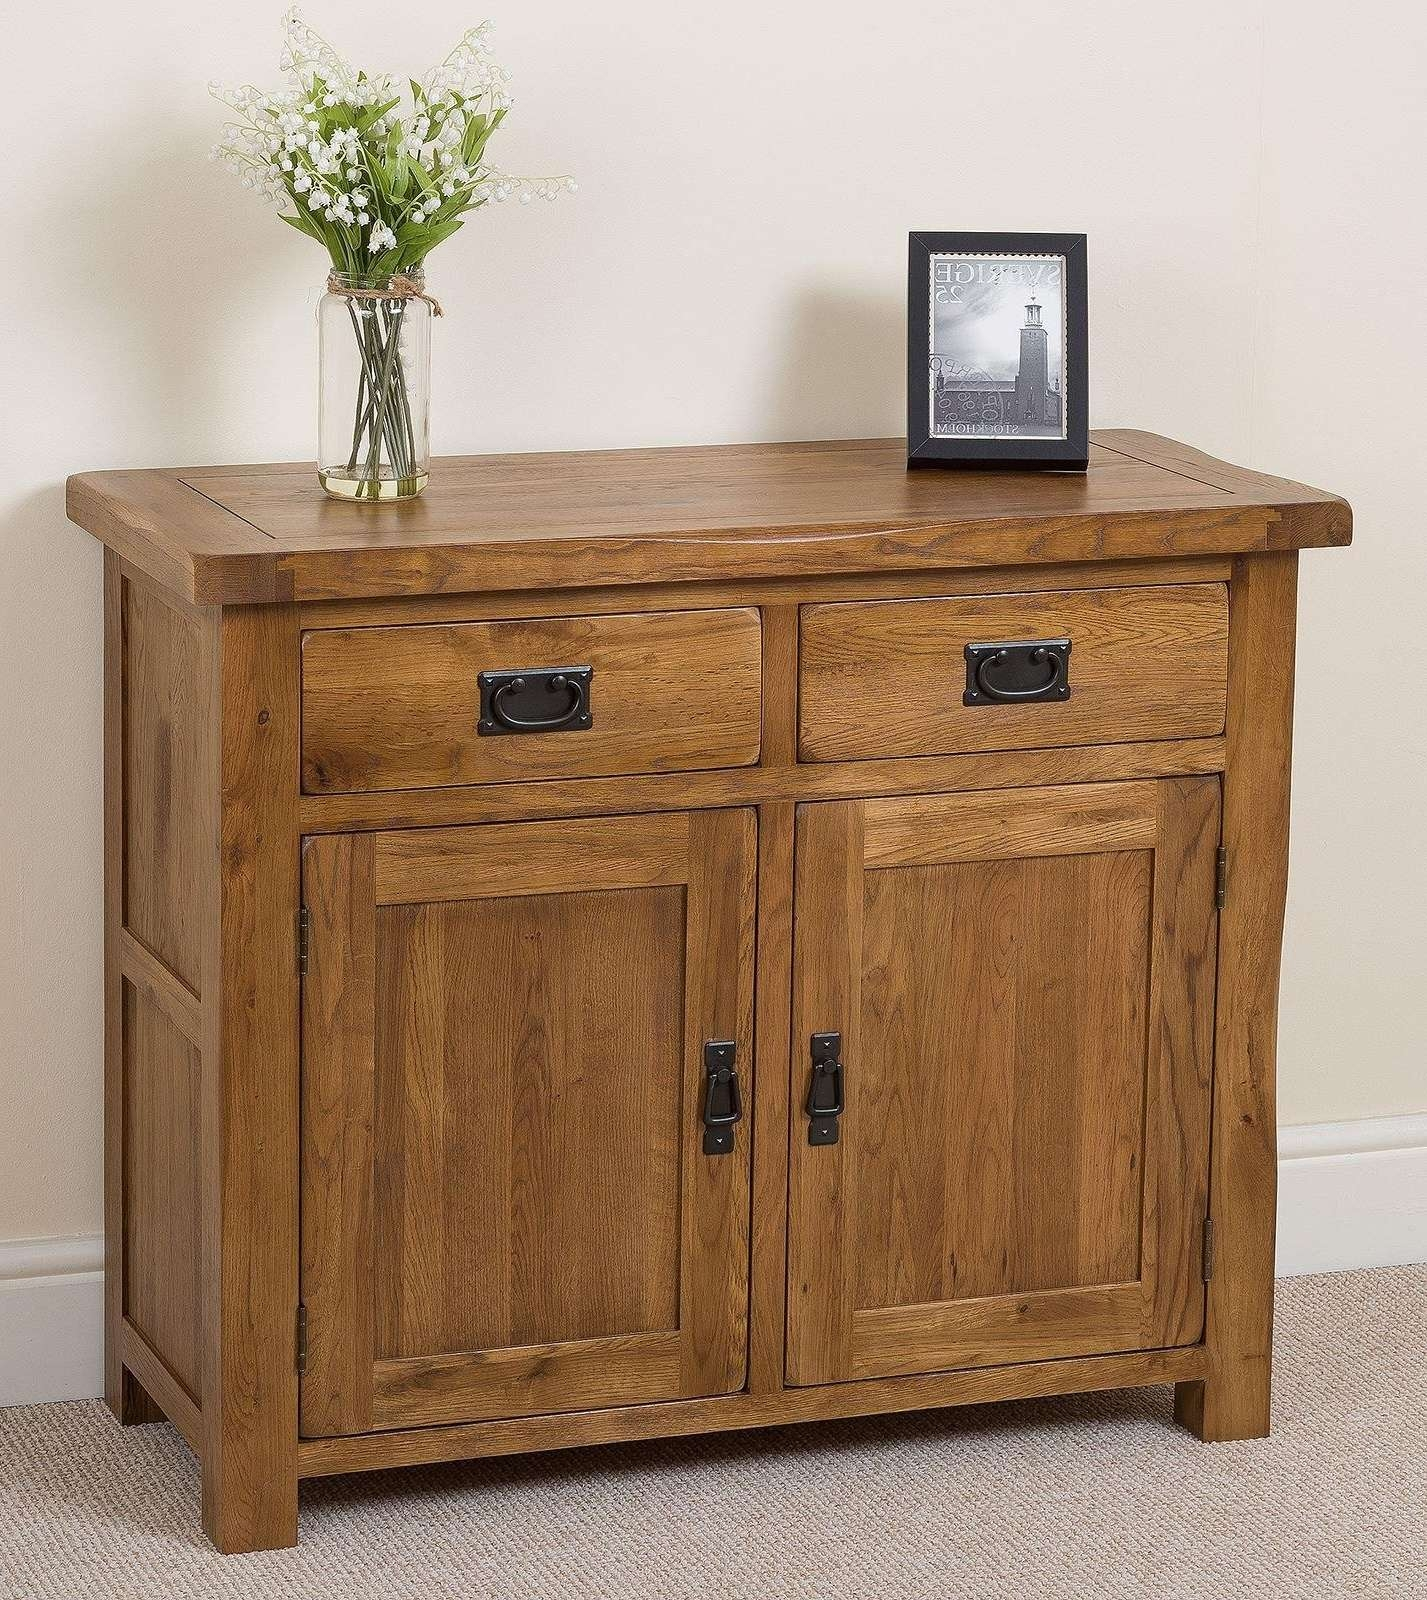 Cotswold Rustic Small Oak Sideboard | Free Uk Delivery With Small Sideboards (View 5 of 20)